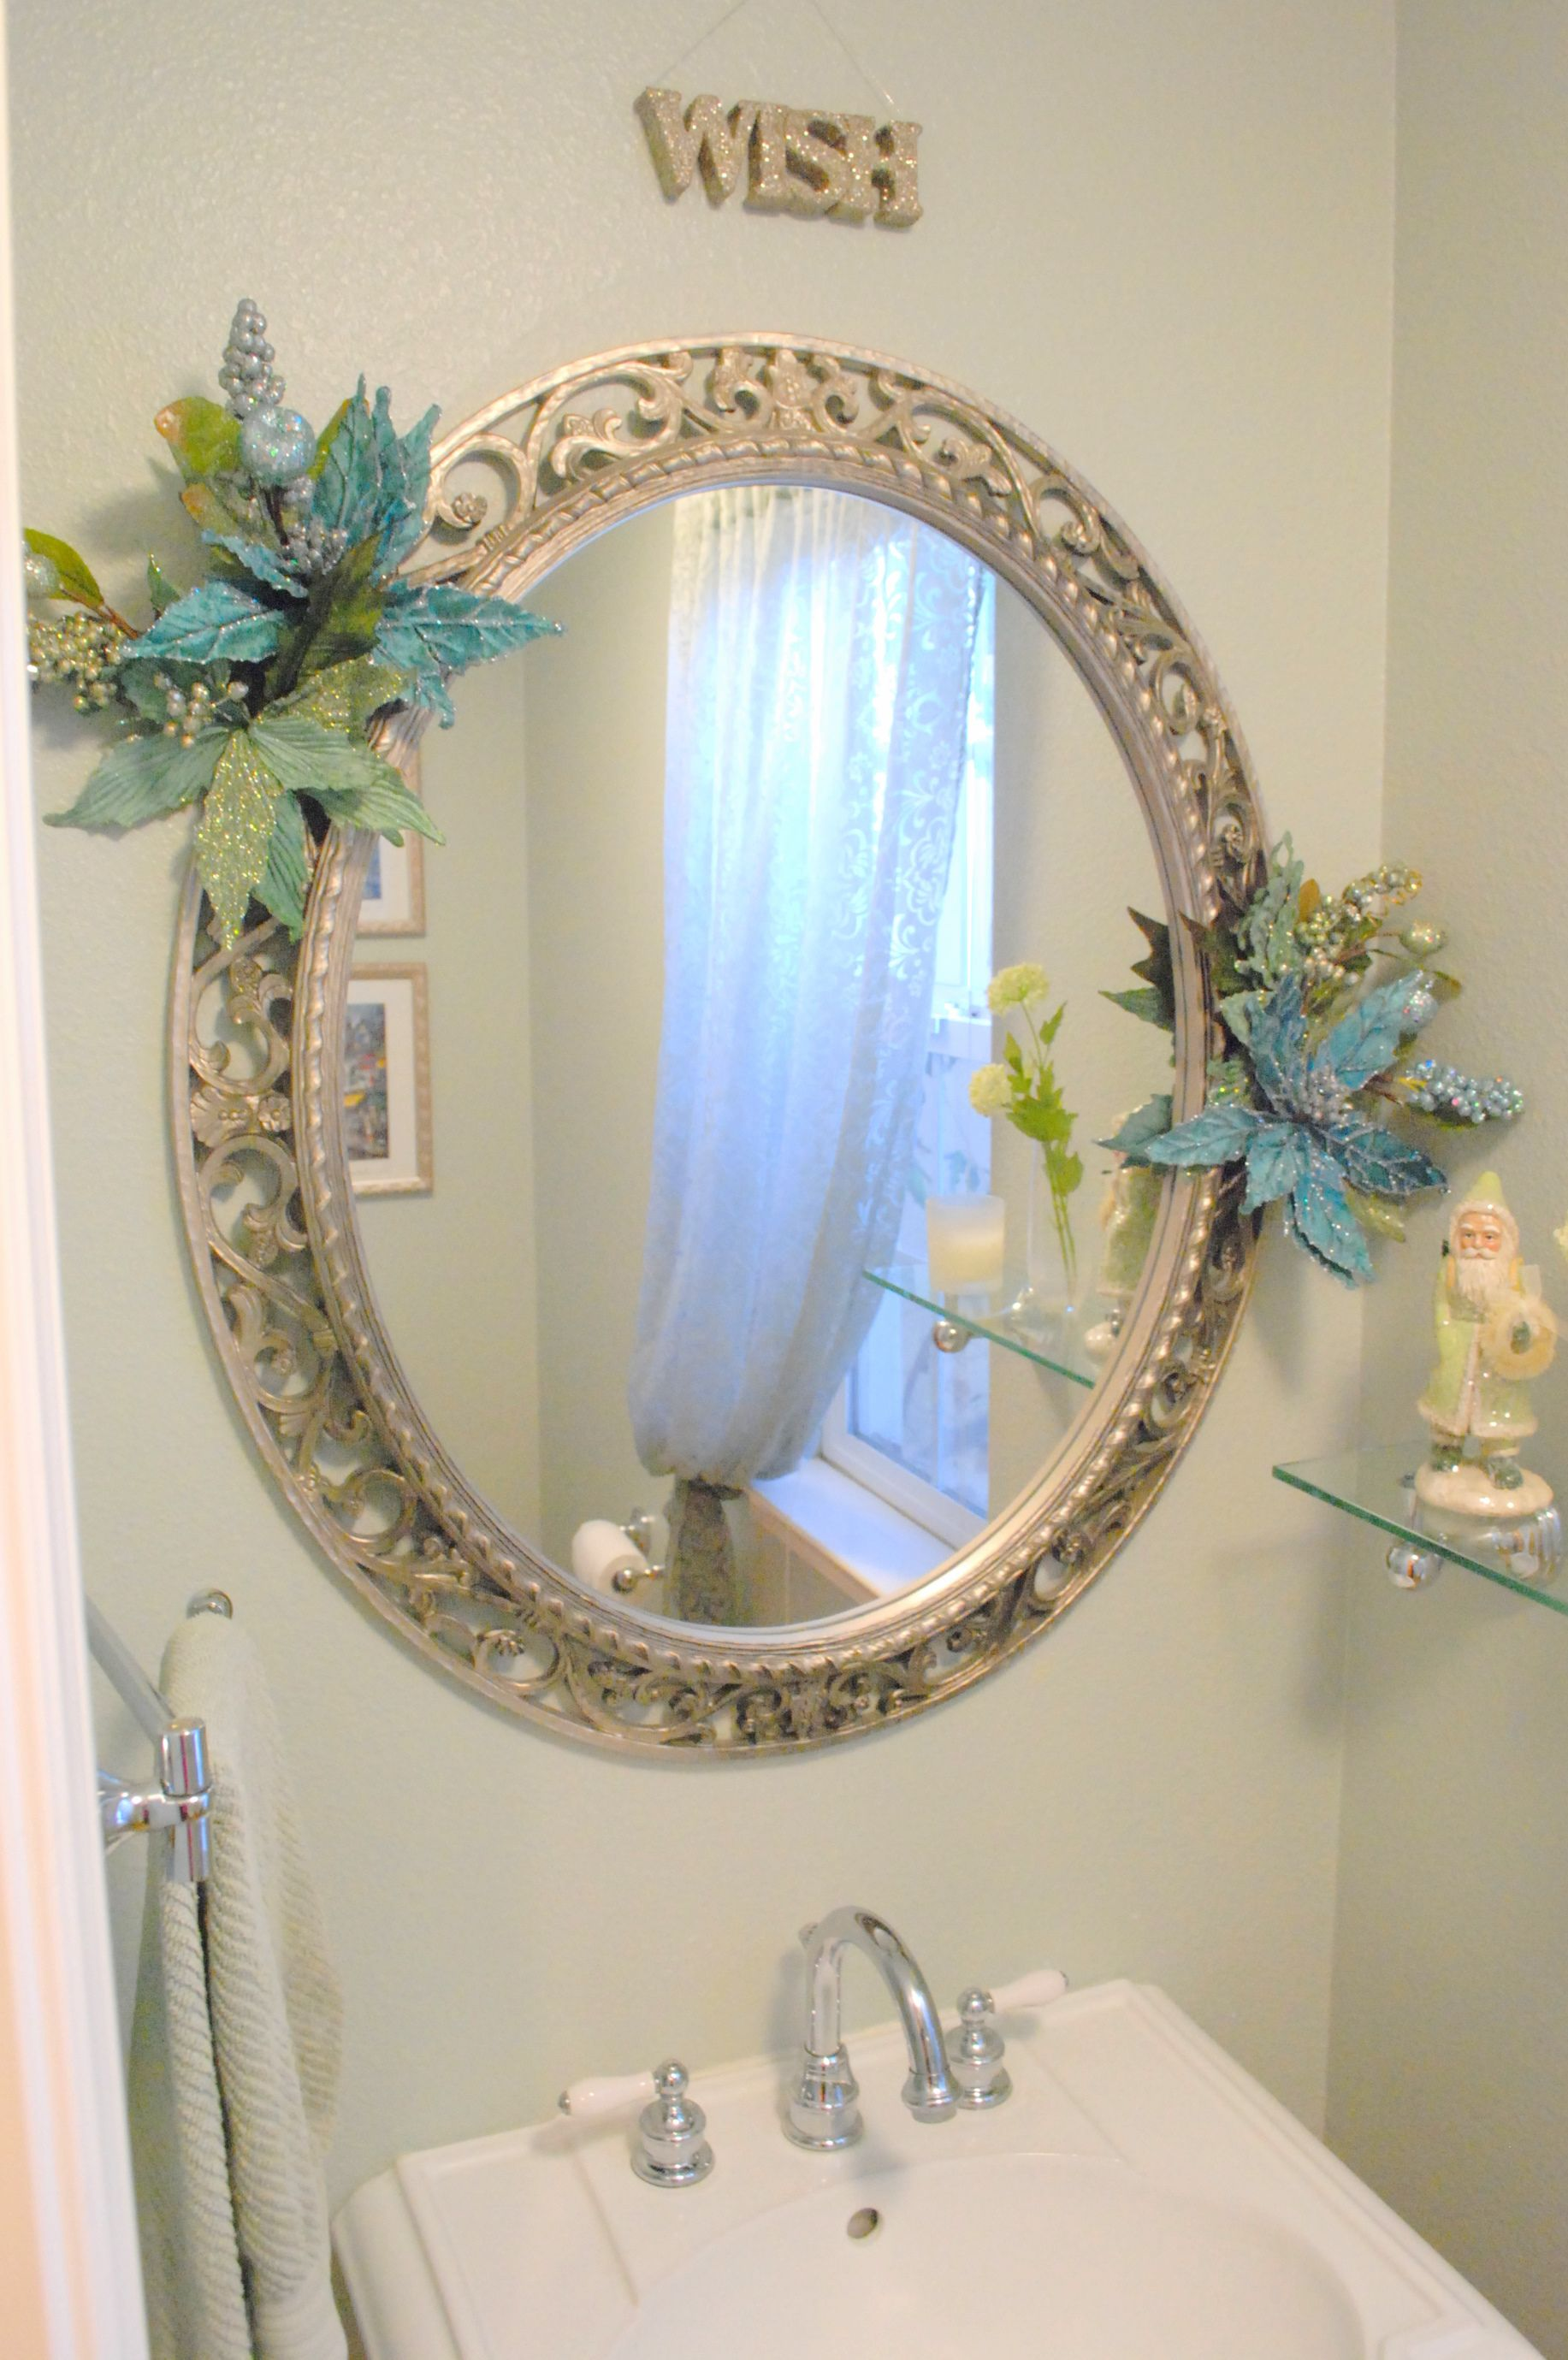 Holiday bathroom decorating ideas - Decorating Your Bathroom For Christmas